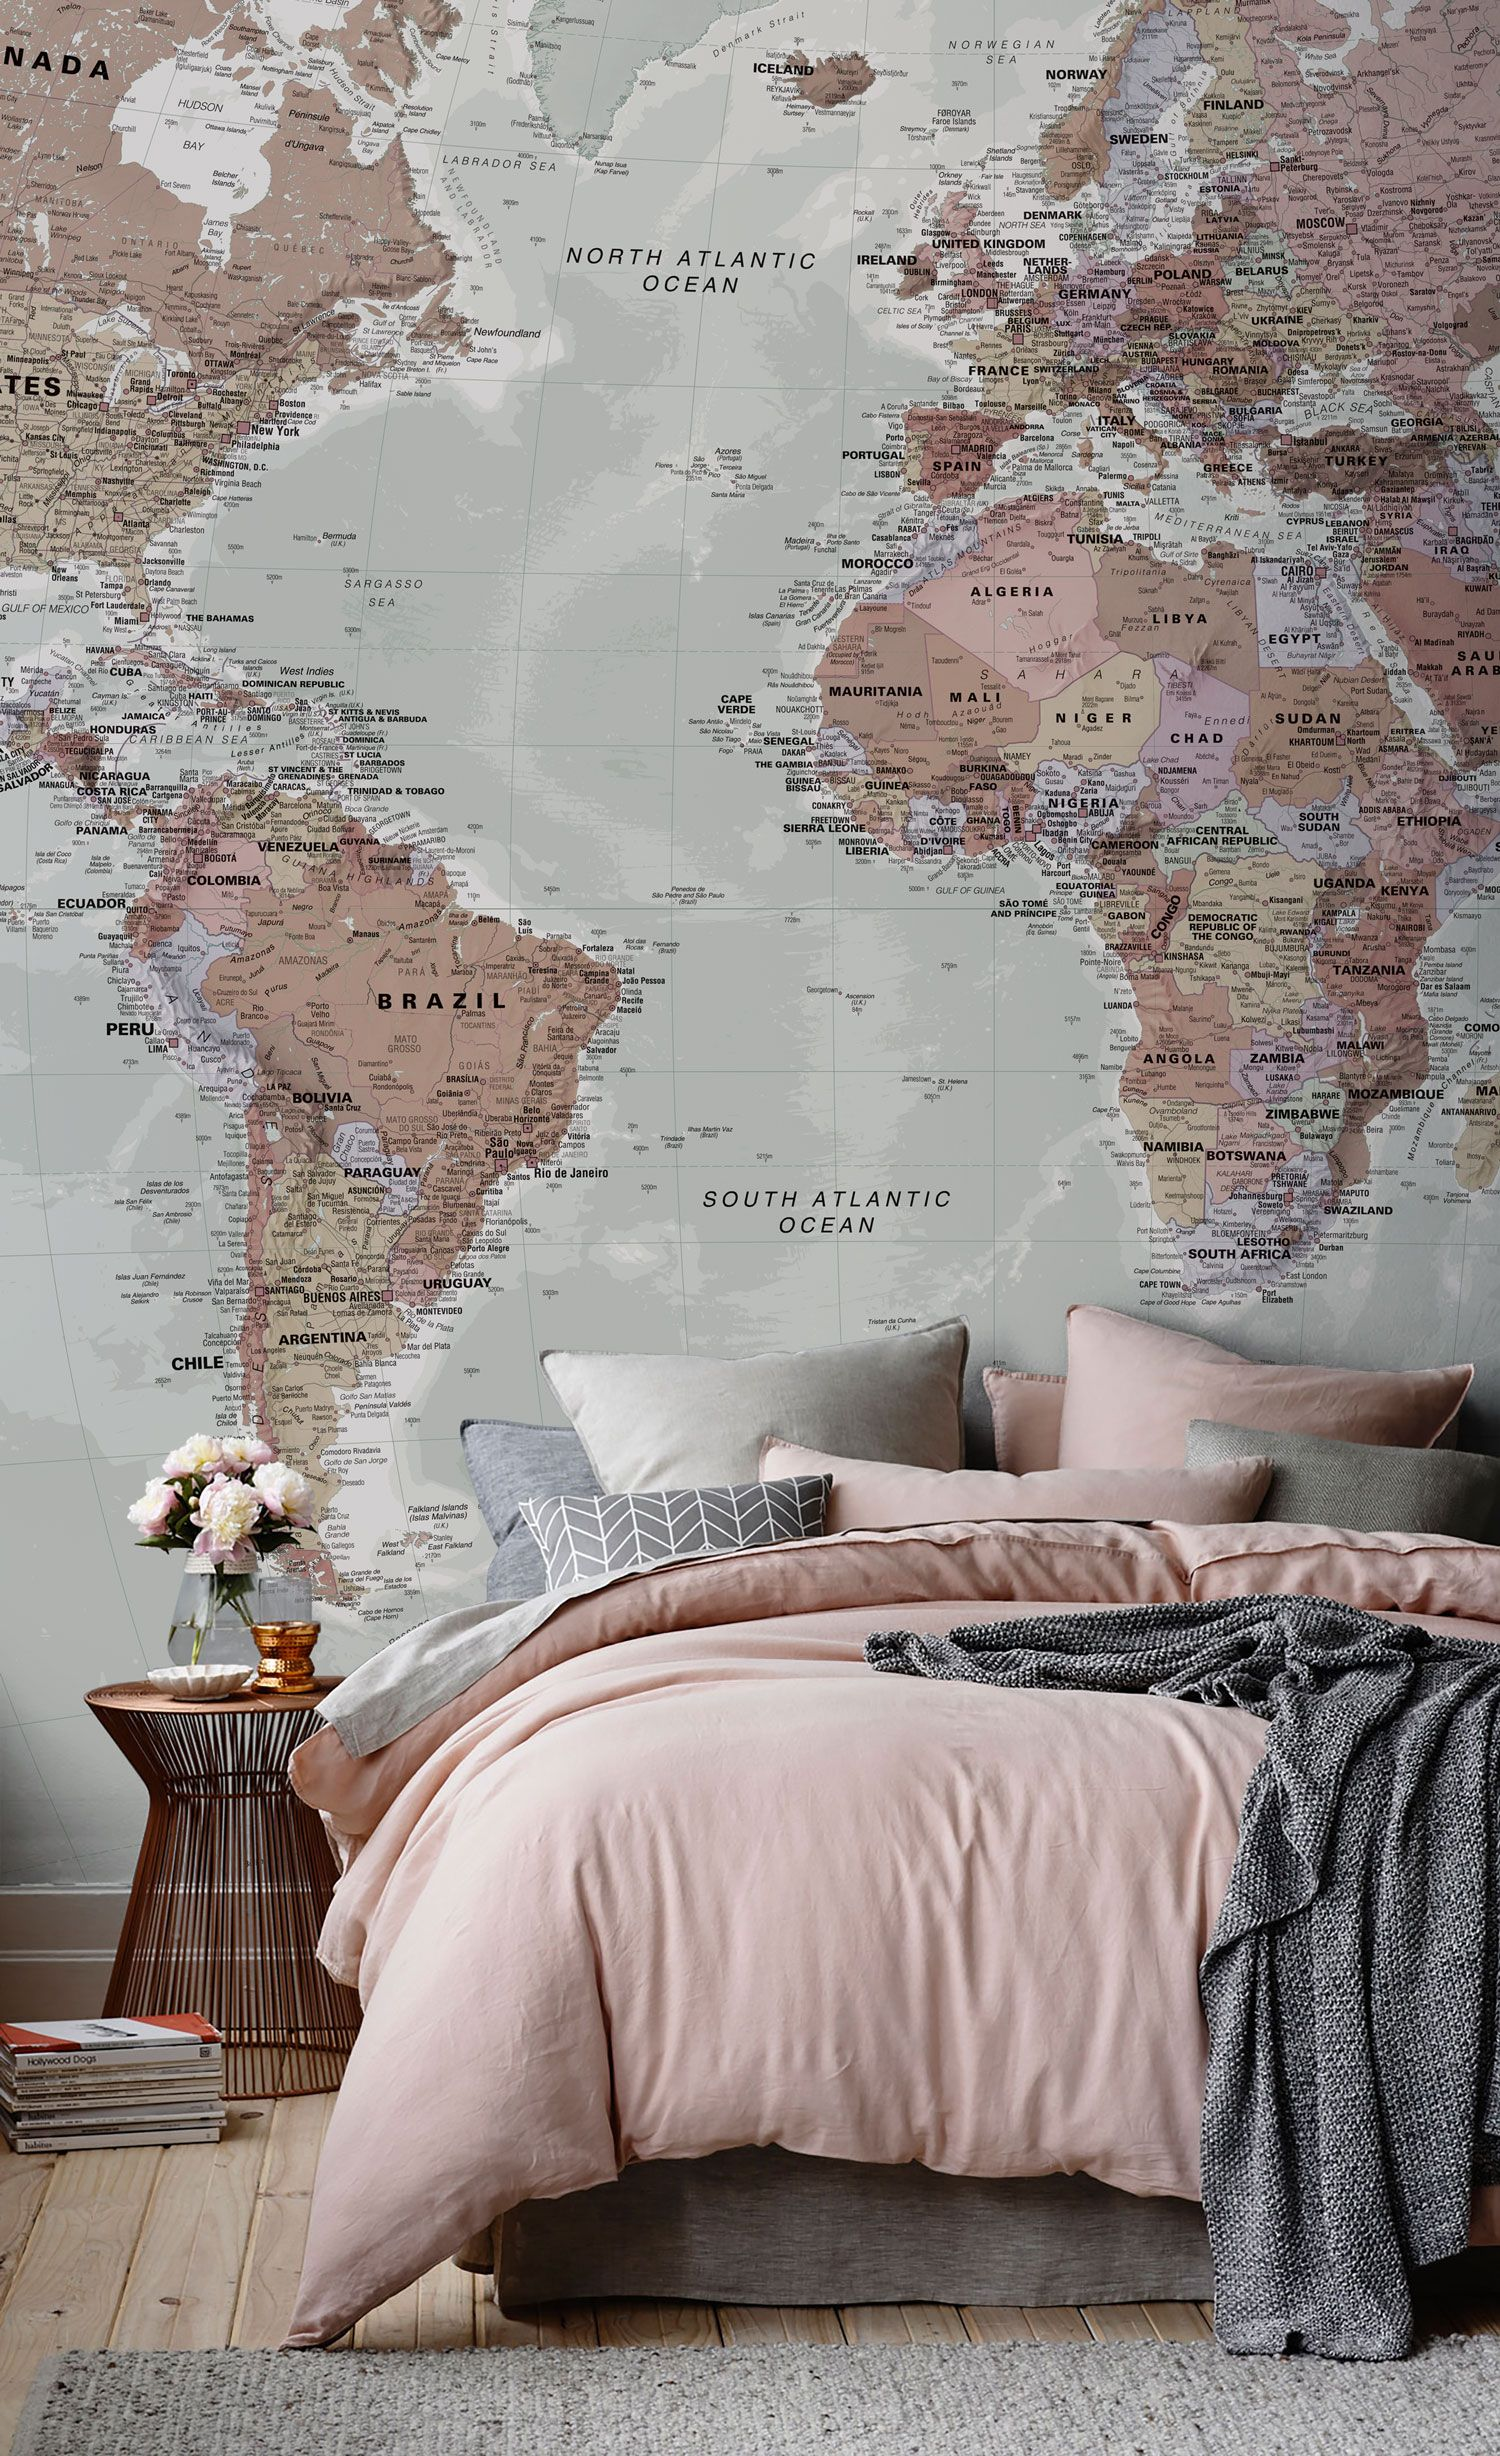 Classic world map wallpaper stylish map mural muralswallpaper it would be too easy hitting the snooze button in a bedroom like this wonderful muted colours come together to give the perfect balance of feminine decor gumiabroncs